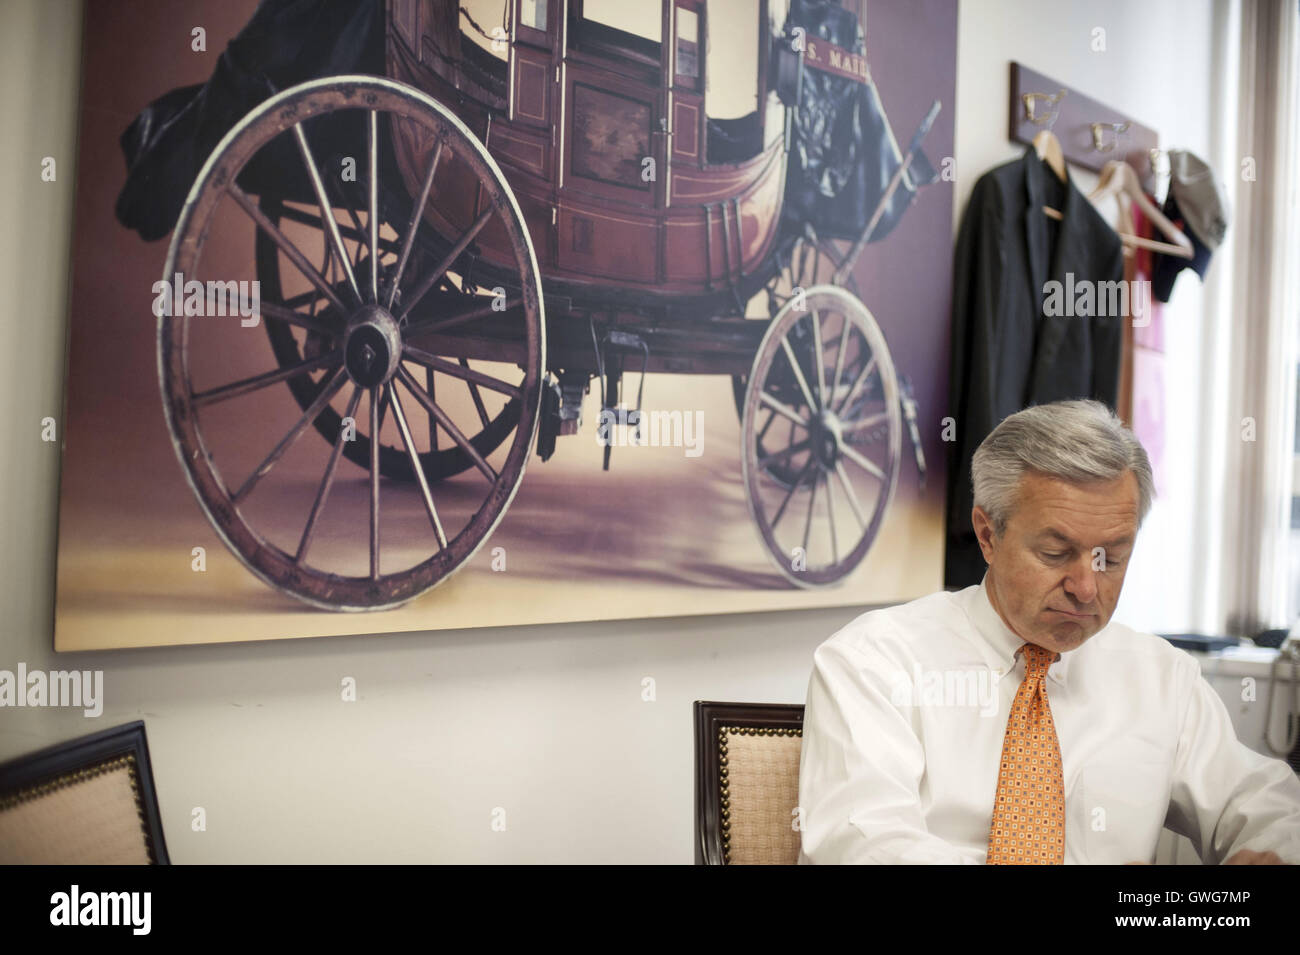 August 21, 2008 - San Francisco, CA, U.S - Wells Fargo CEO John Stumpf at the Wells Fargo Headquarters in downtown Stock Photo